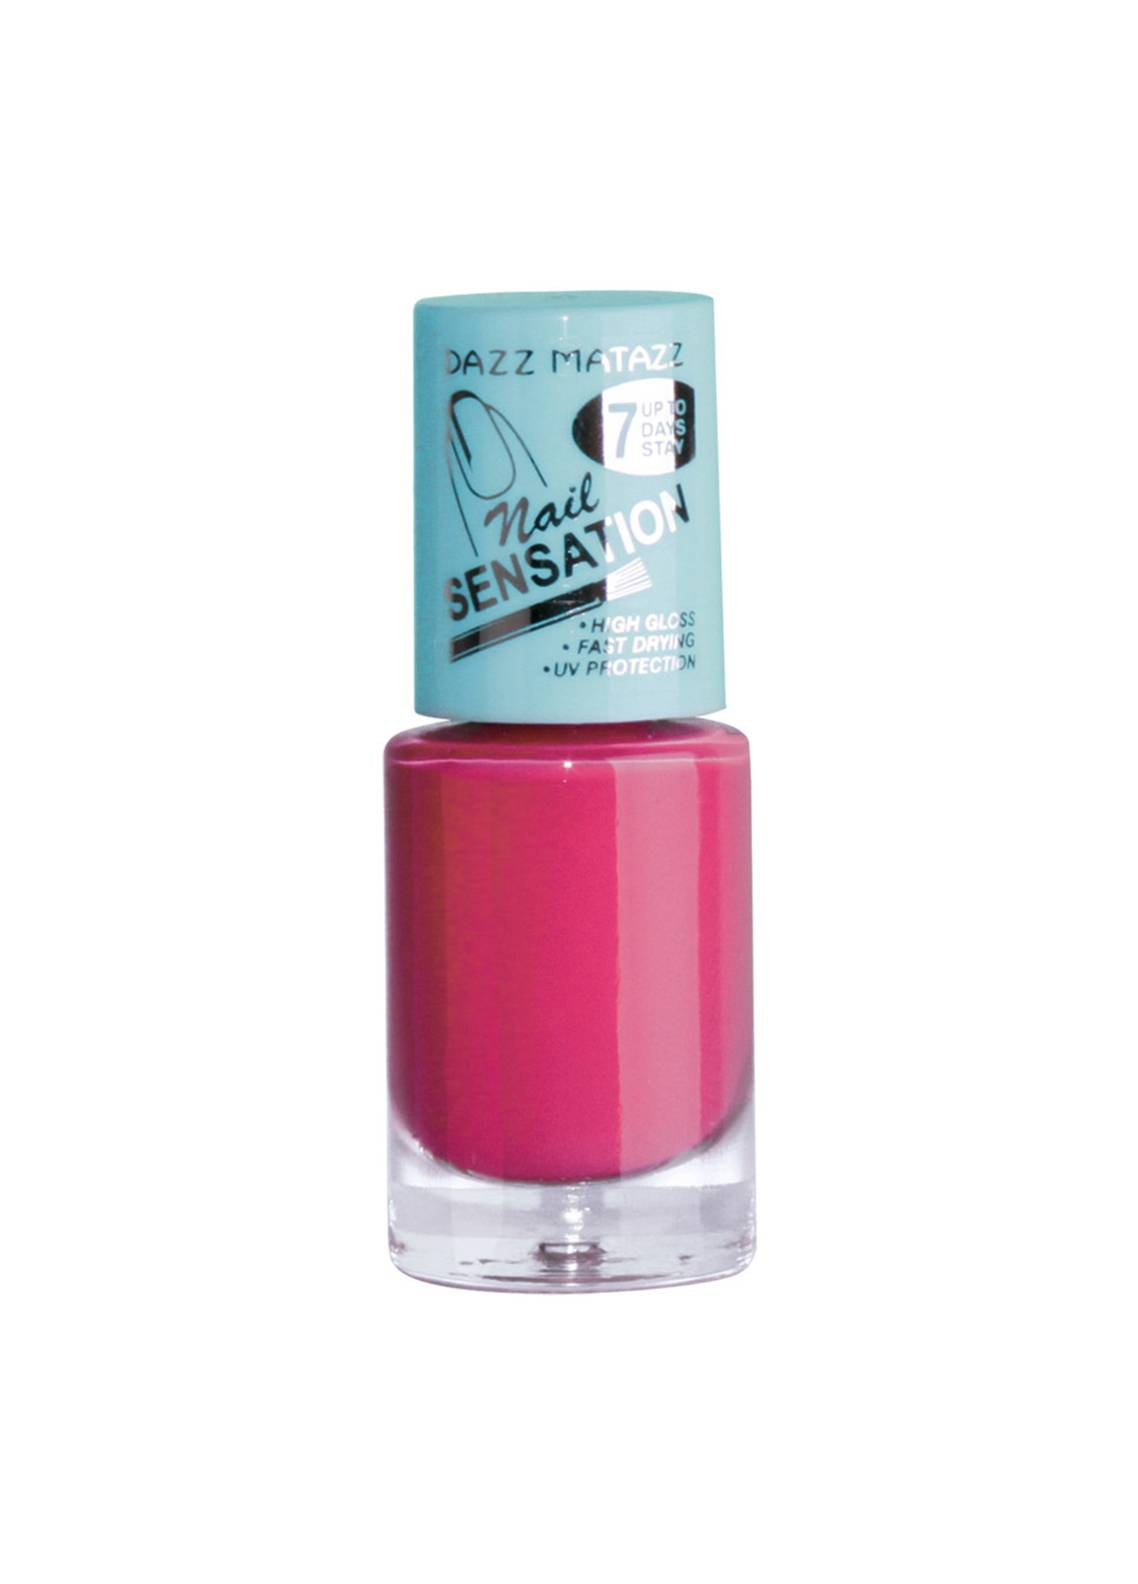 Dazz Matazz Nail Sensation 15 Nail Polish BE DELICIOUS